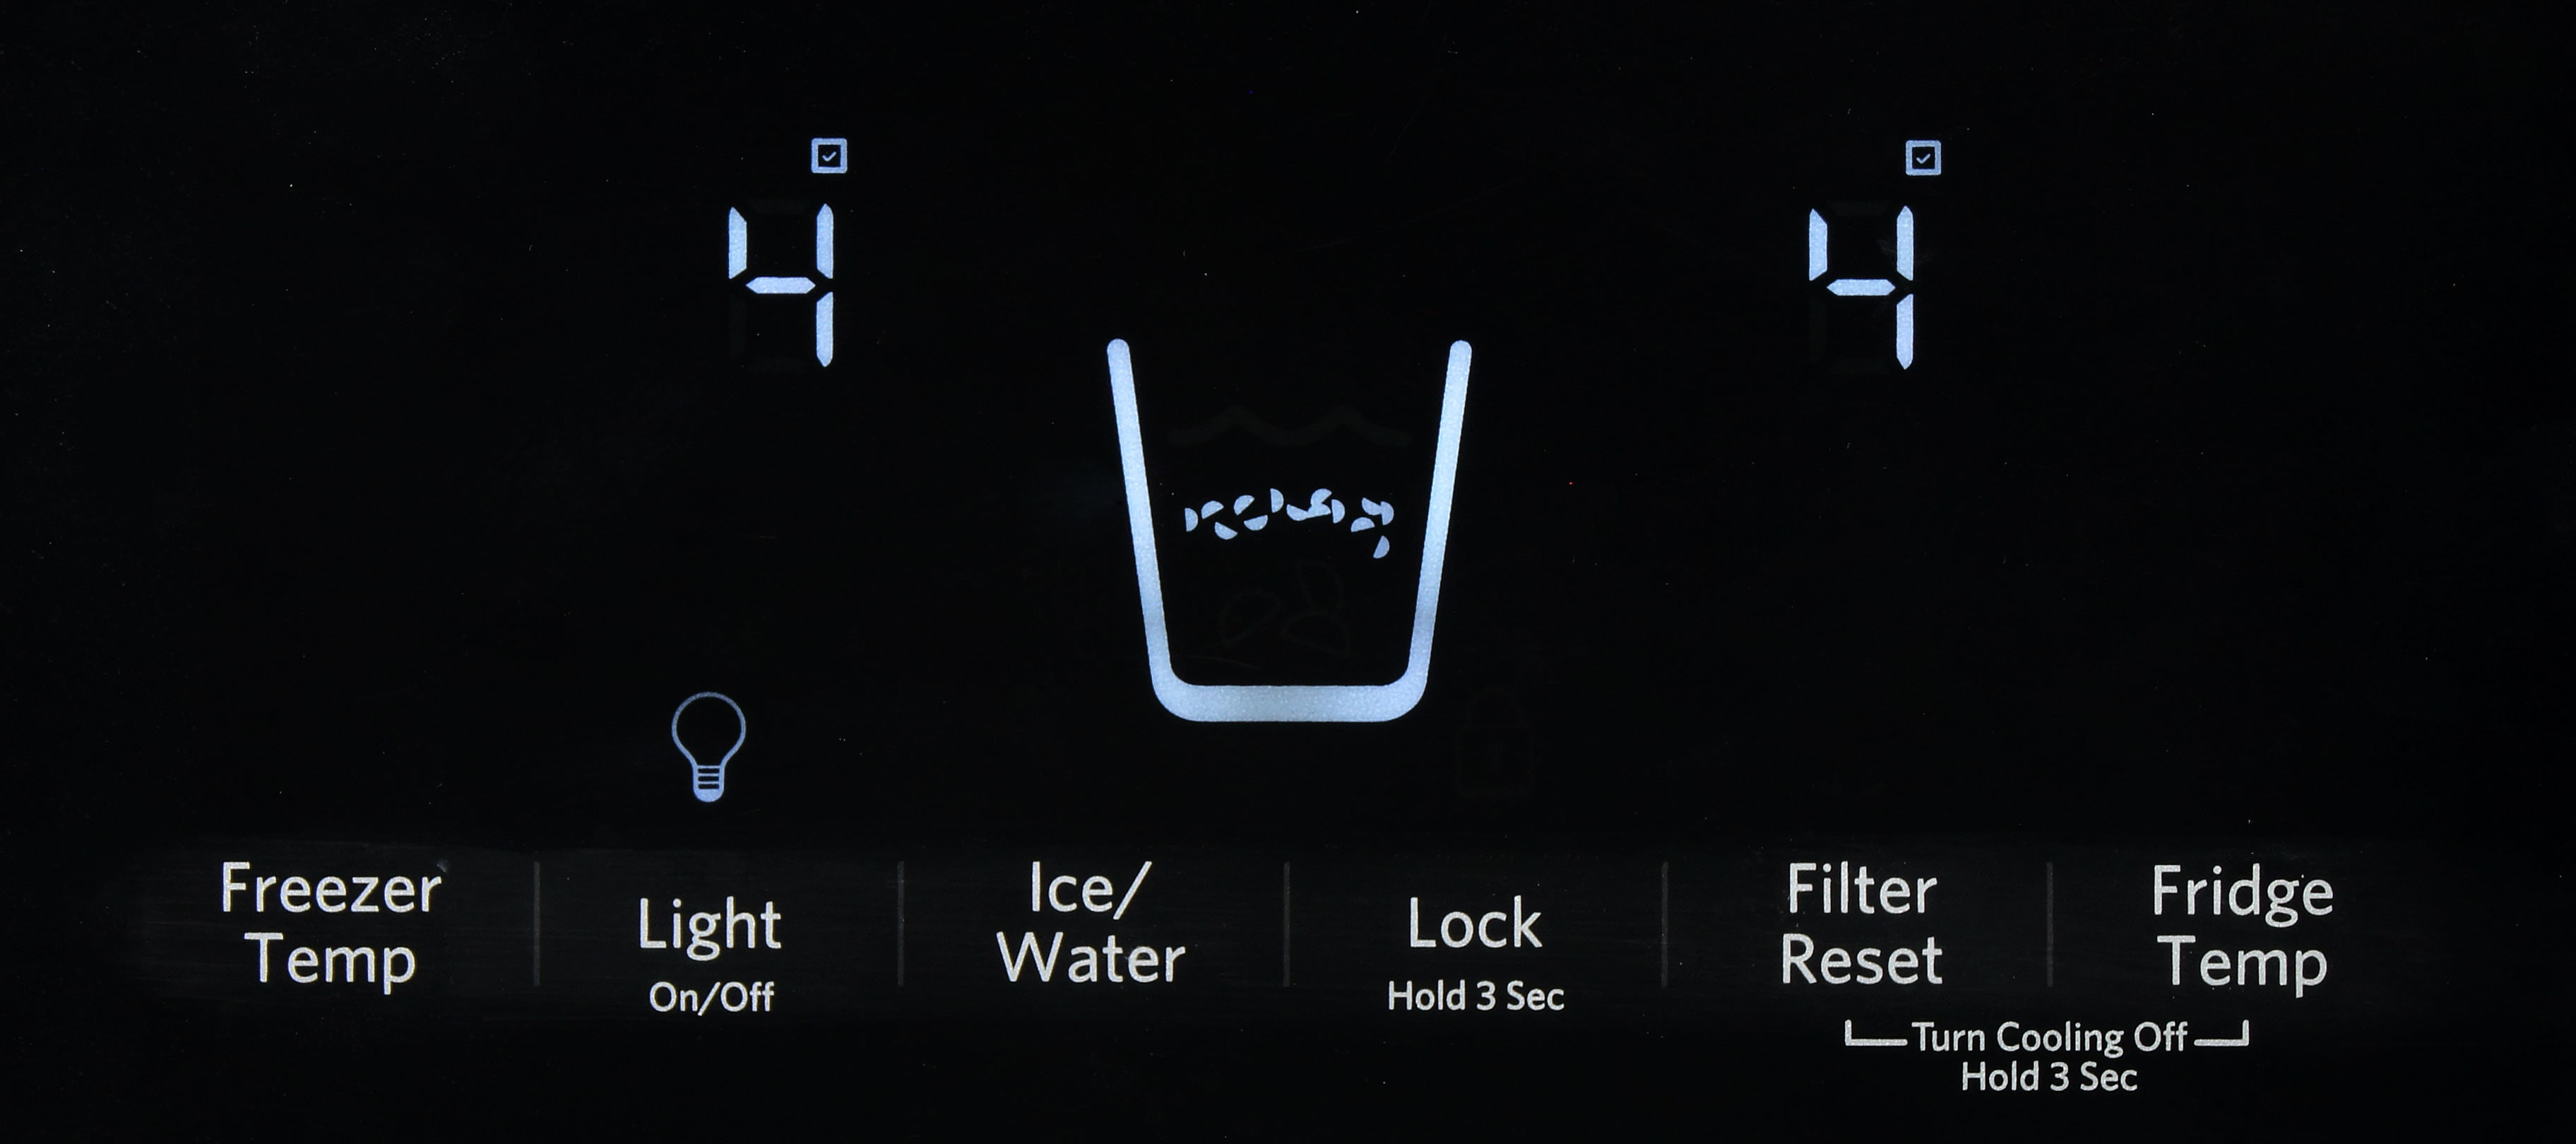 Despite the presence of a touch screen control panel, the KitchenAid KSF22C4CYY doesn't use a degree-based thermostat.